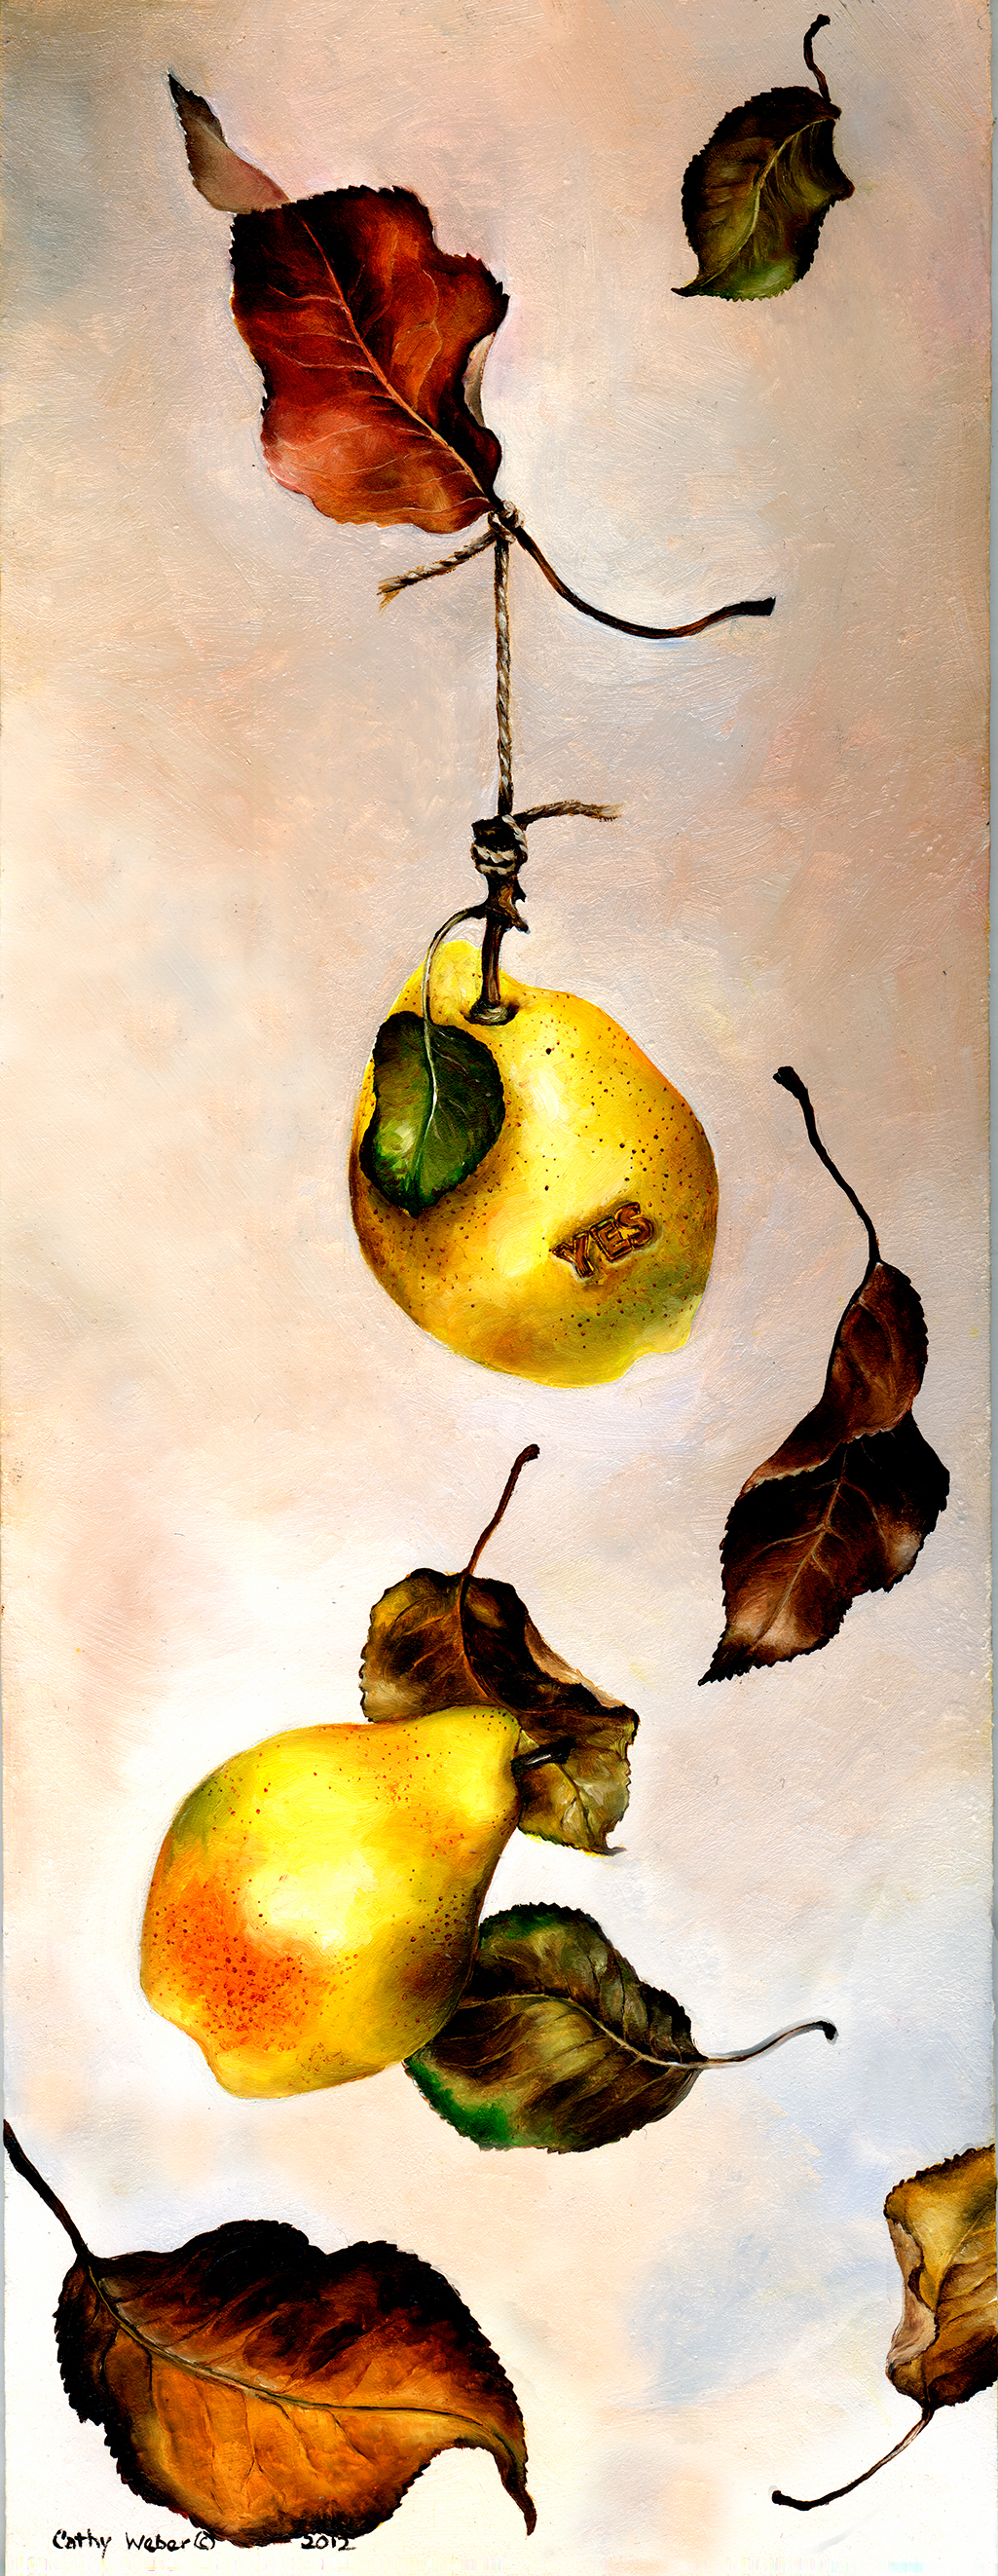 cathy weber - art - painting - woman - oil - montana - oil - object - pear